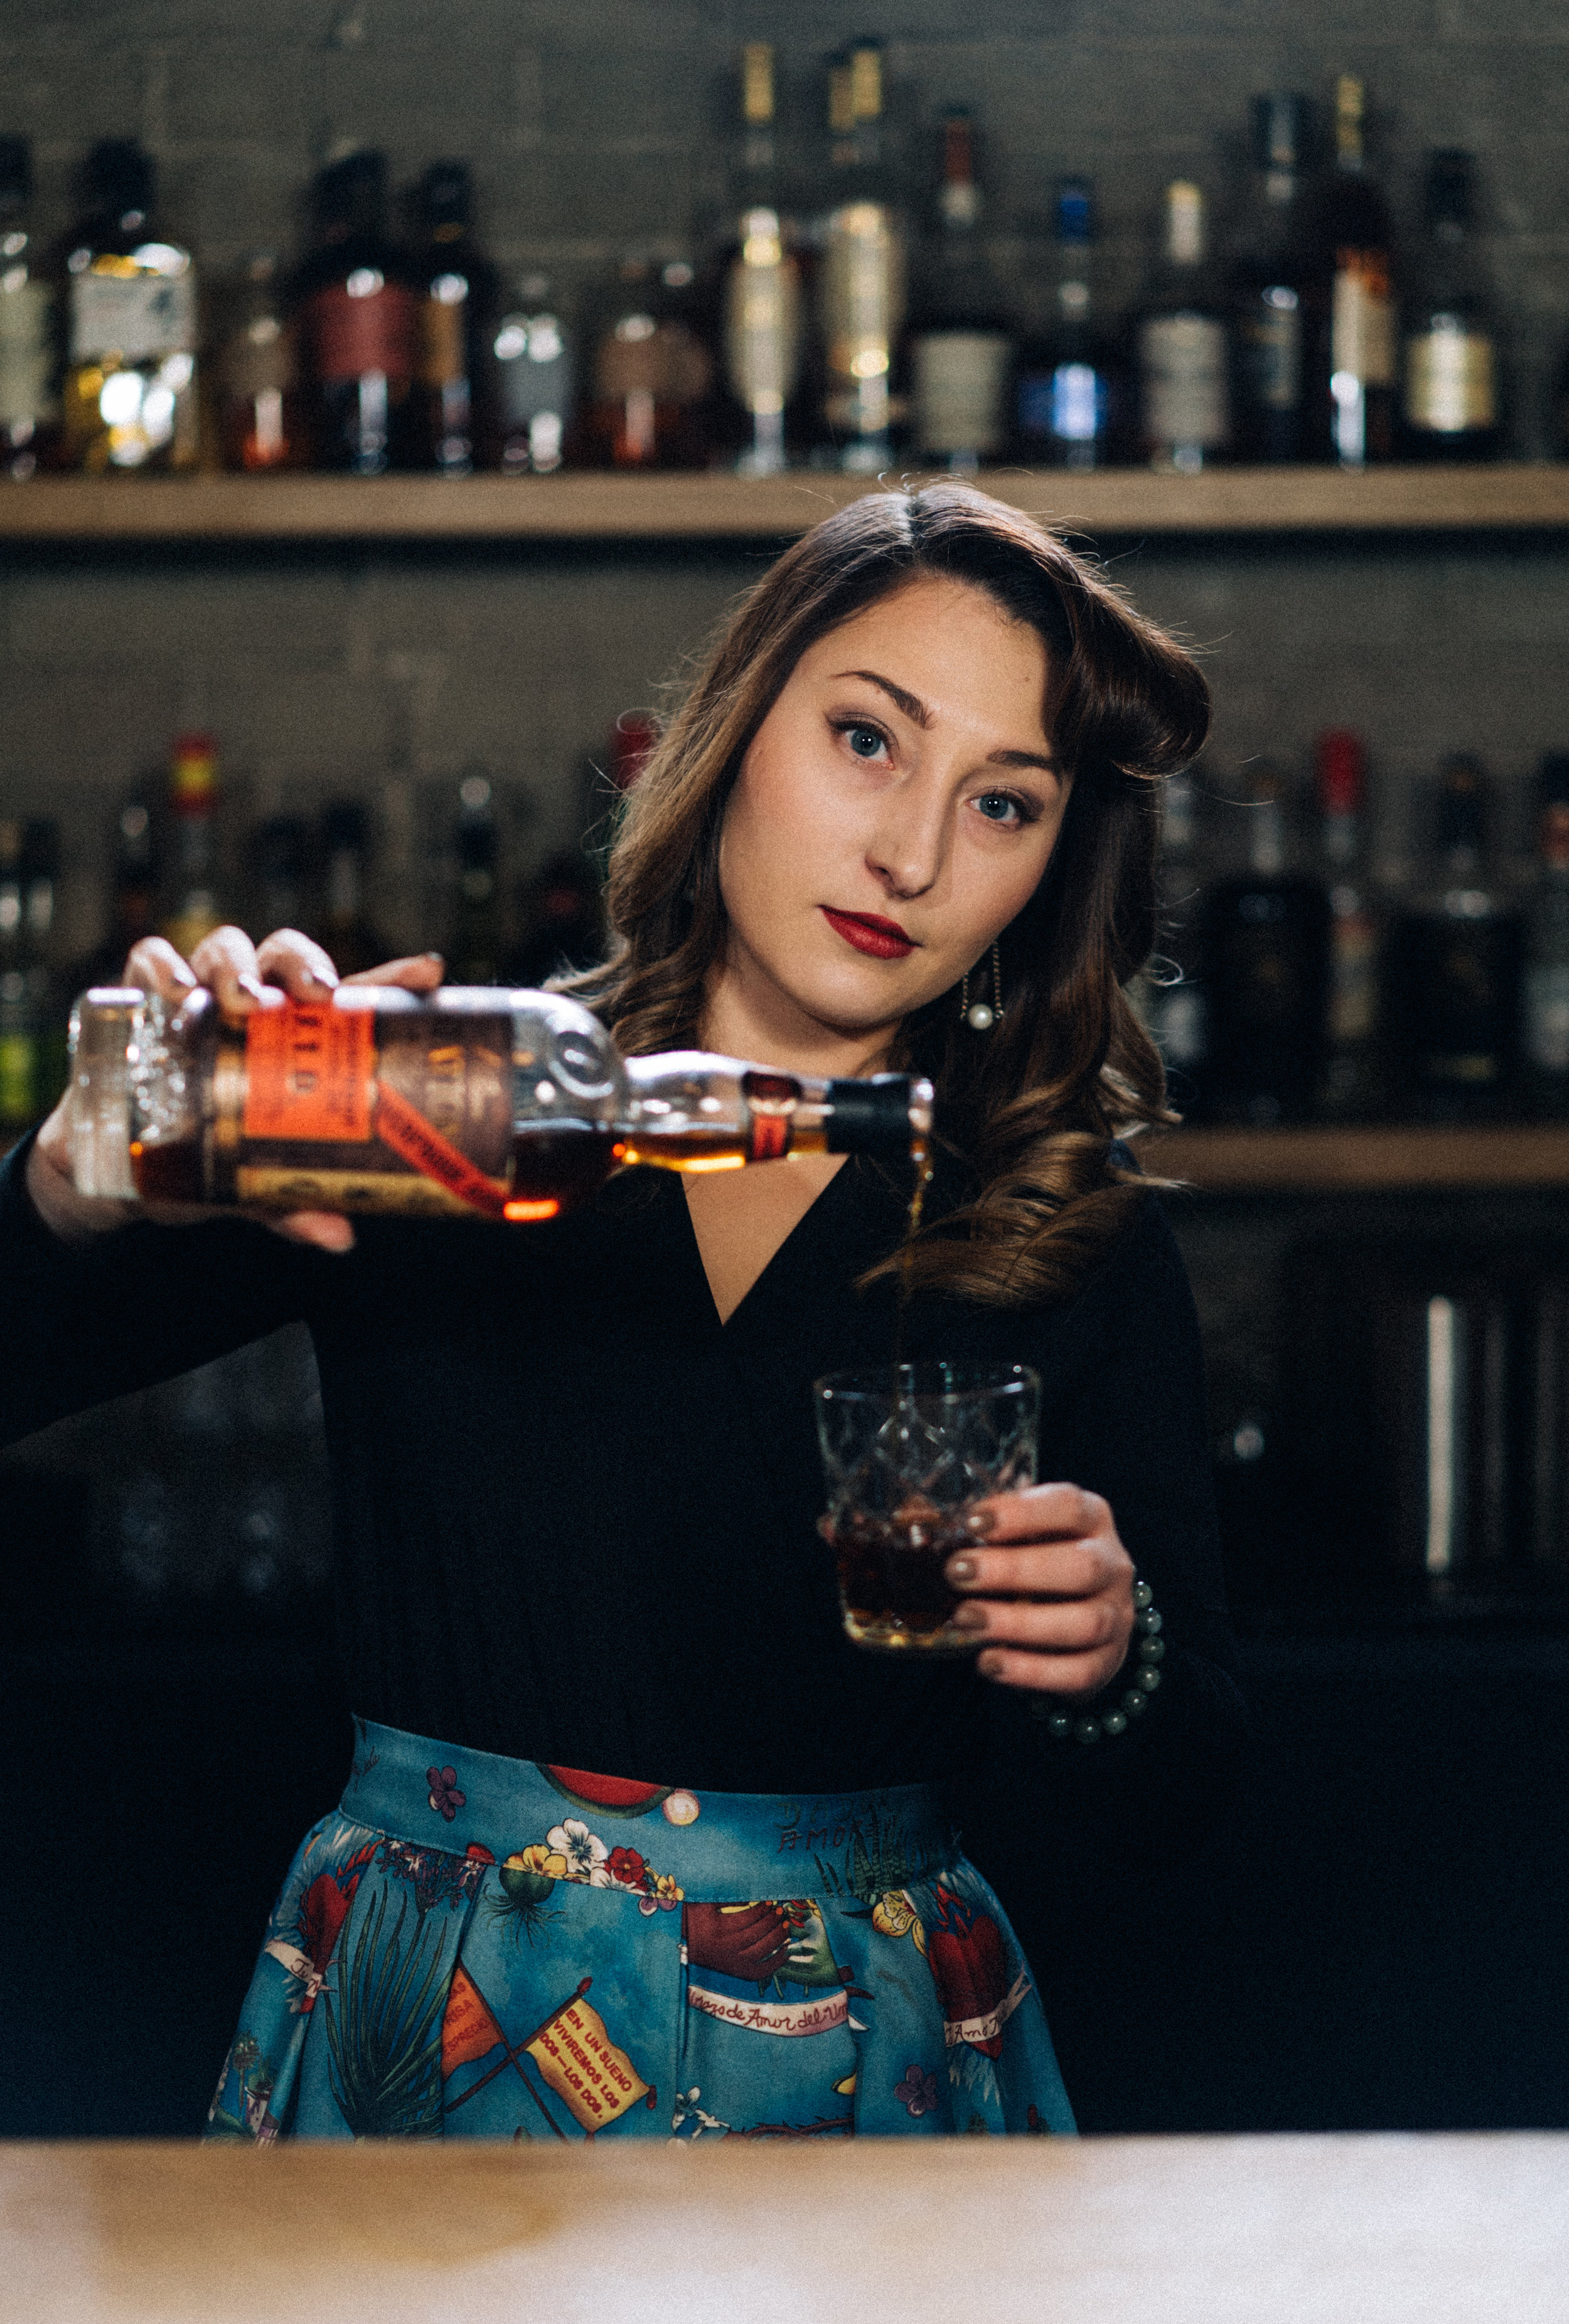 Natasha Trowsdale    Last Known Whereabouts:  Bar Clementine   Weapon of Choice:  Plantation O.F.T.D.